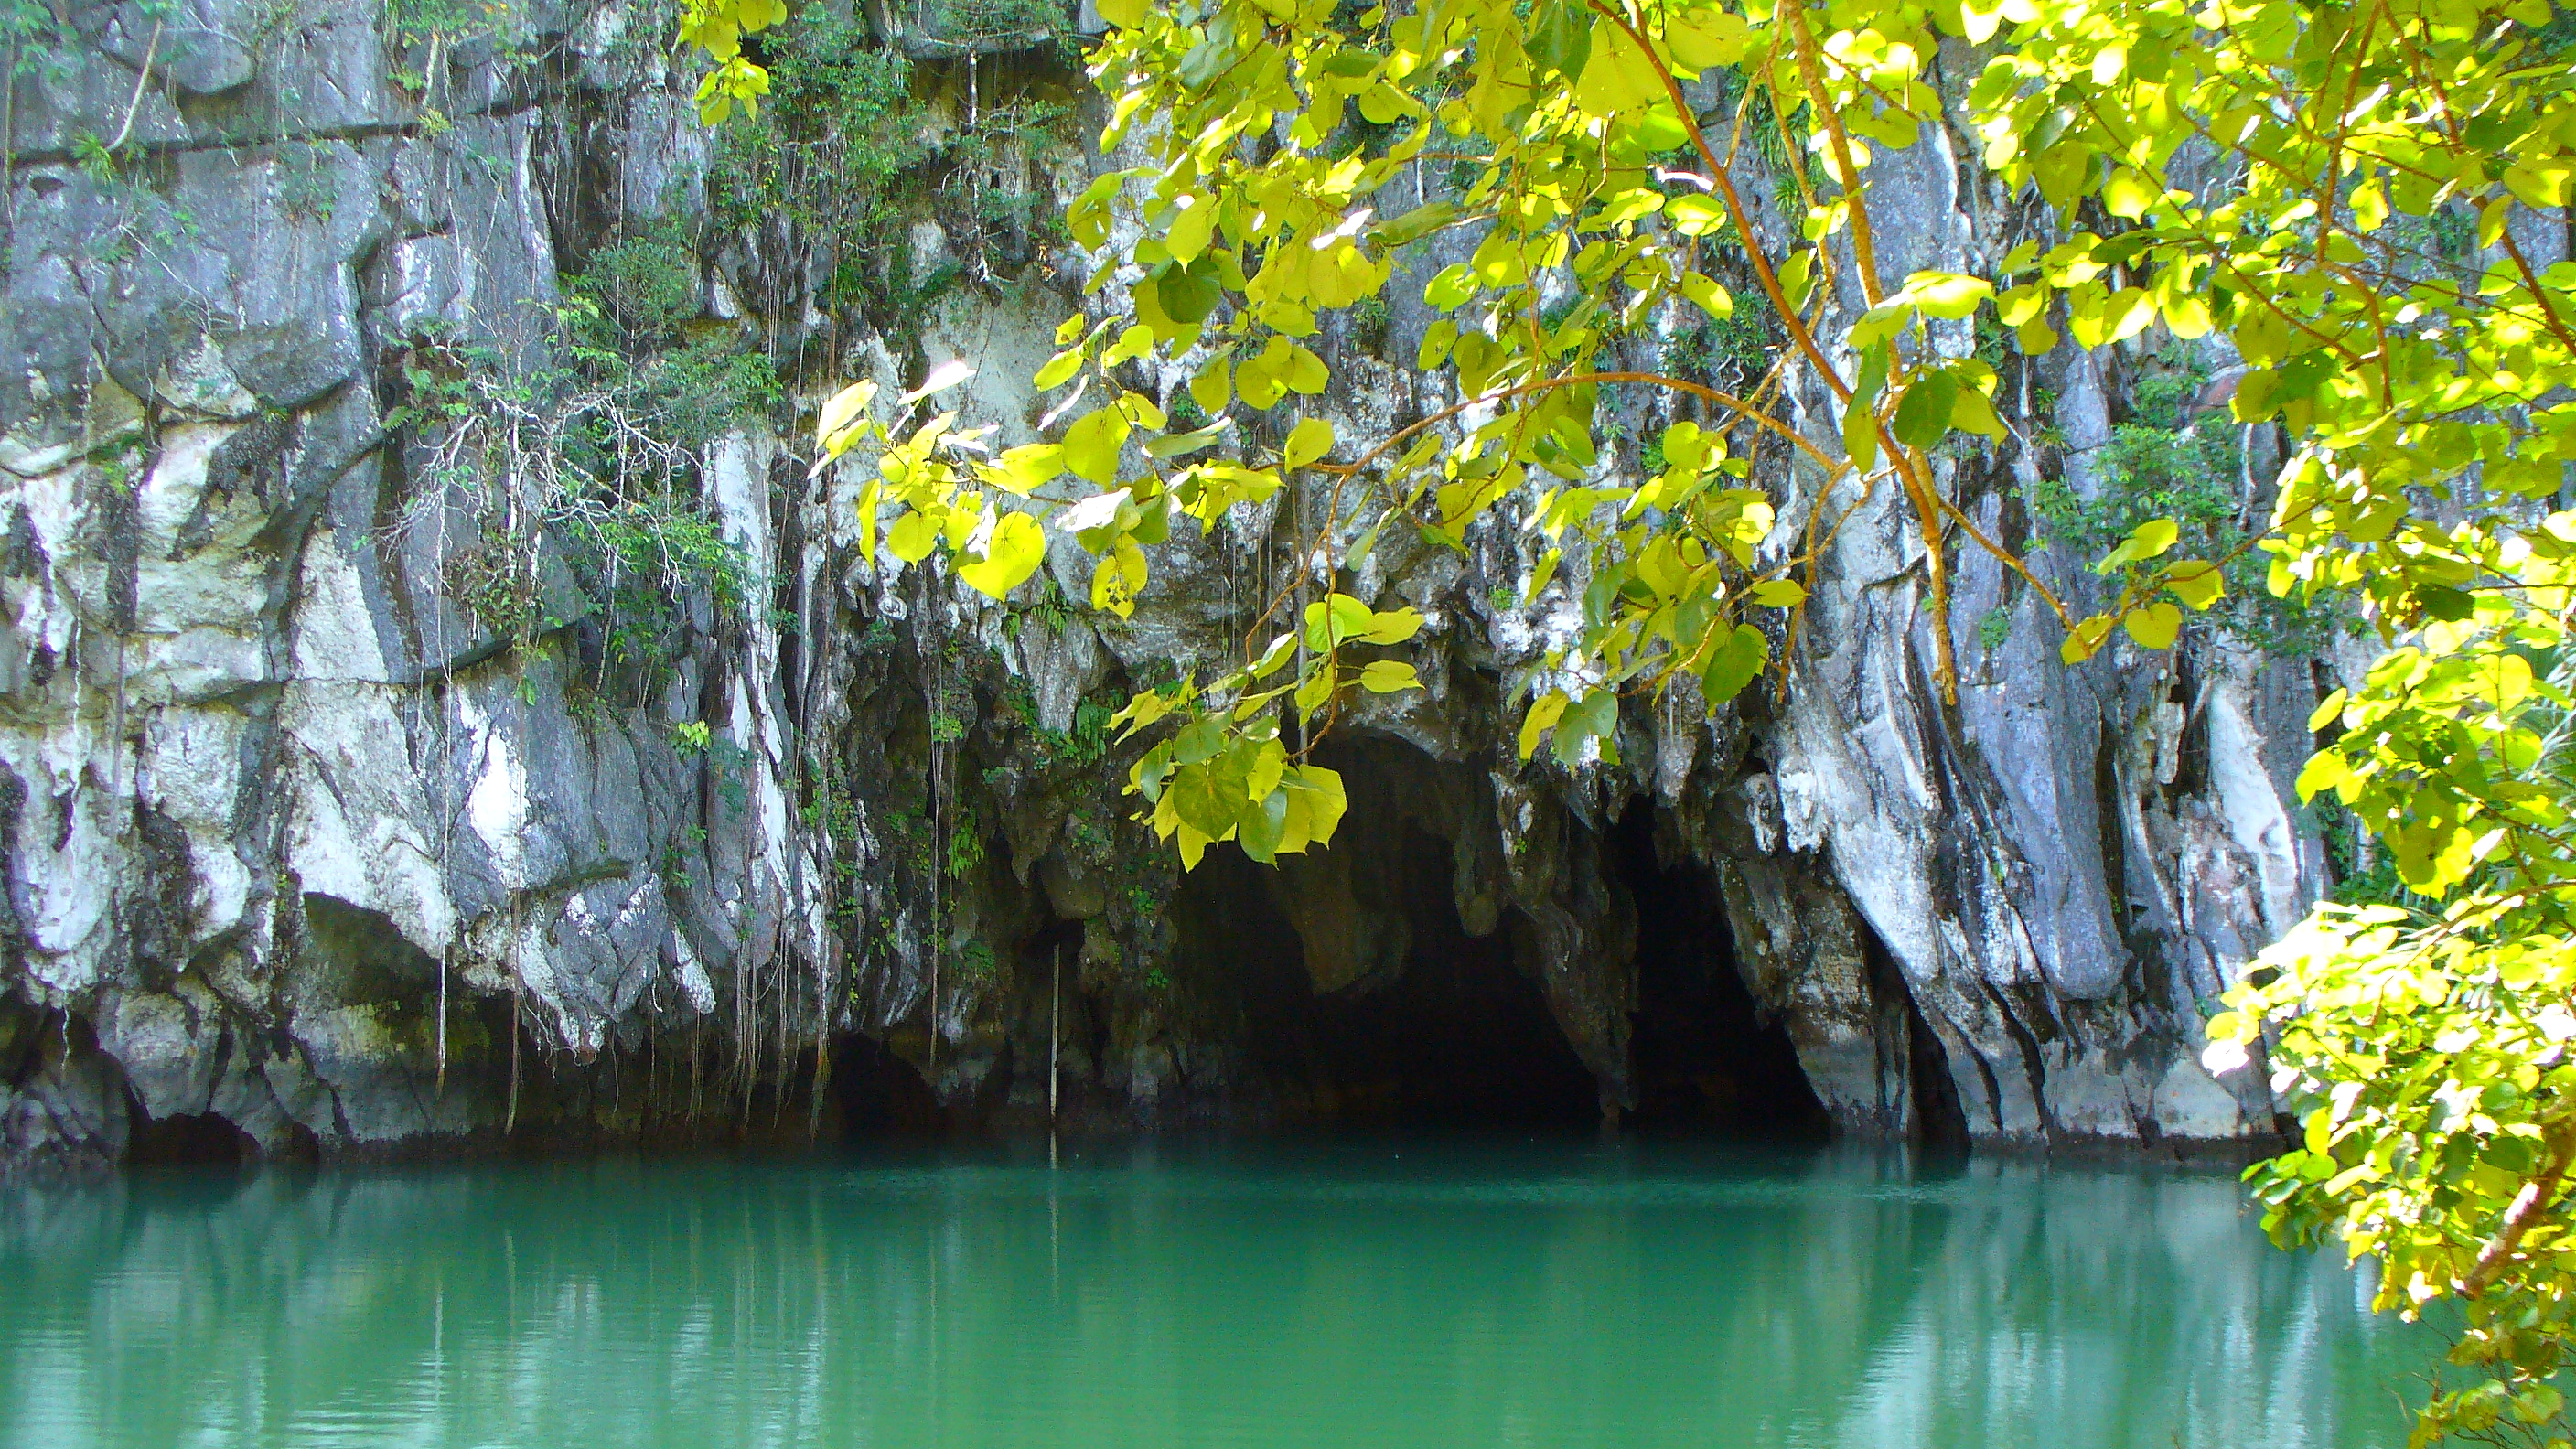 Cave entrace at Puerto Princesa Subterranean River National Park in Palawan, Philippines